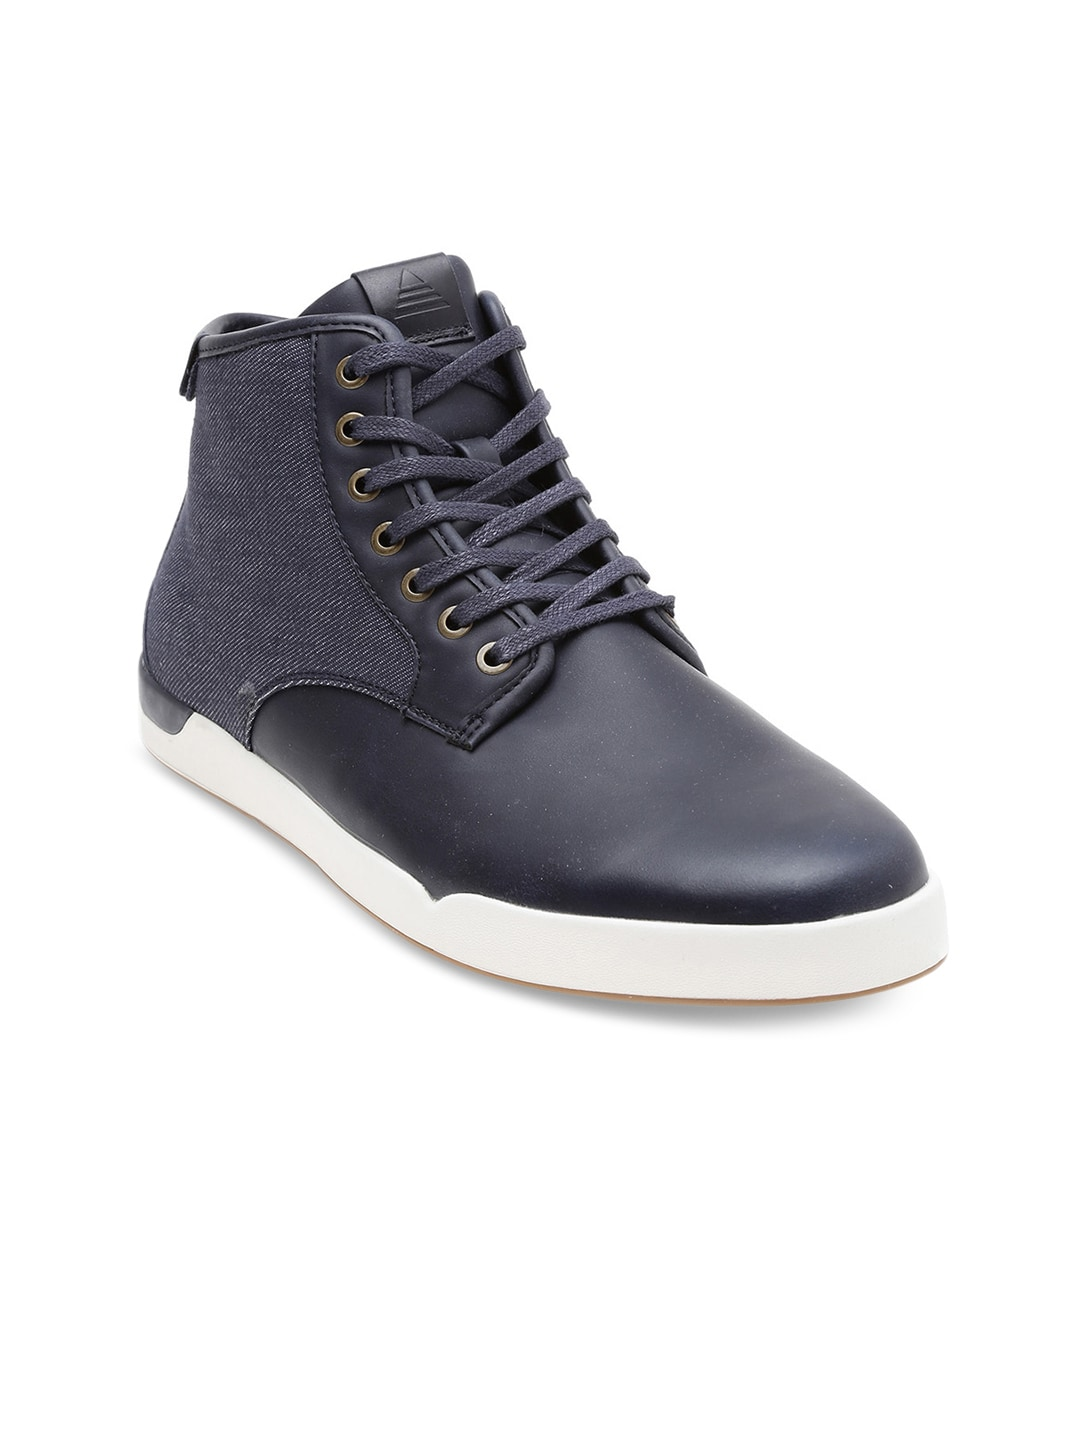 0a08b145f9b0 ALDO Shoes - Buy Shoes from ALDO Online Store in India